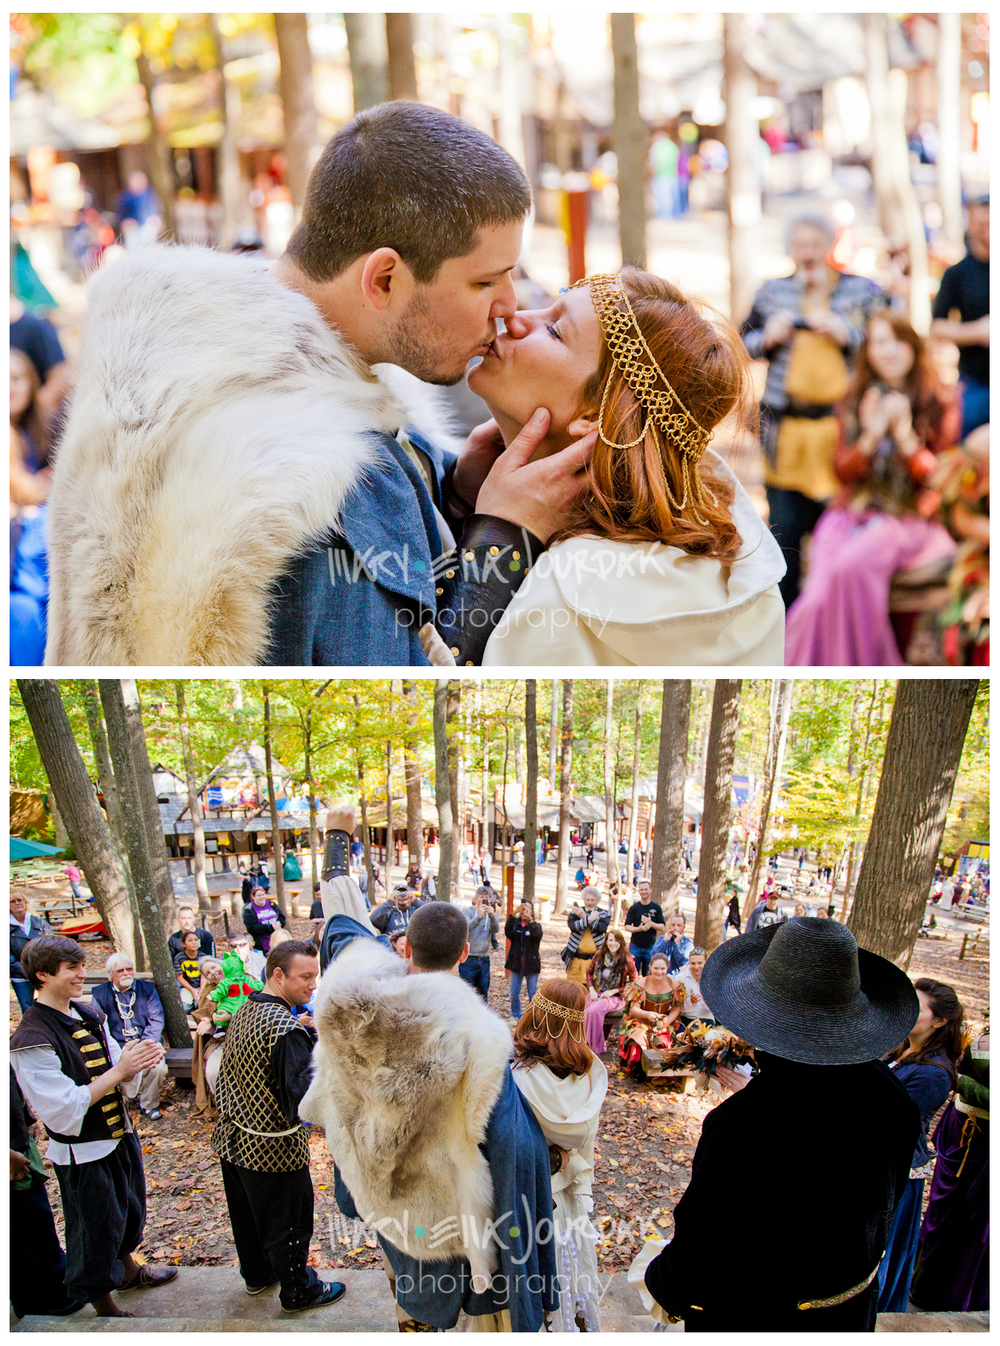 wedding photography washington dc D.C. maryland renaissance festival faire medieval costume kilt corset irish marriage wed bridal annapolis kent island portrait infant child family food photography engagement maternity mary ella jourdak